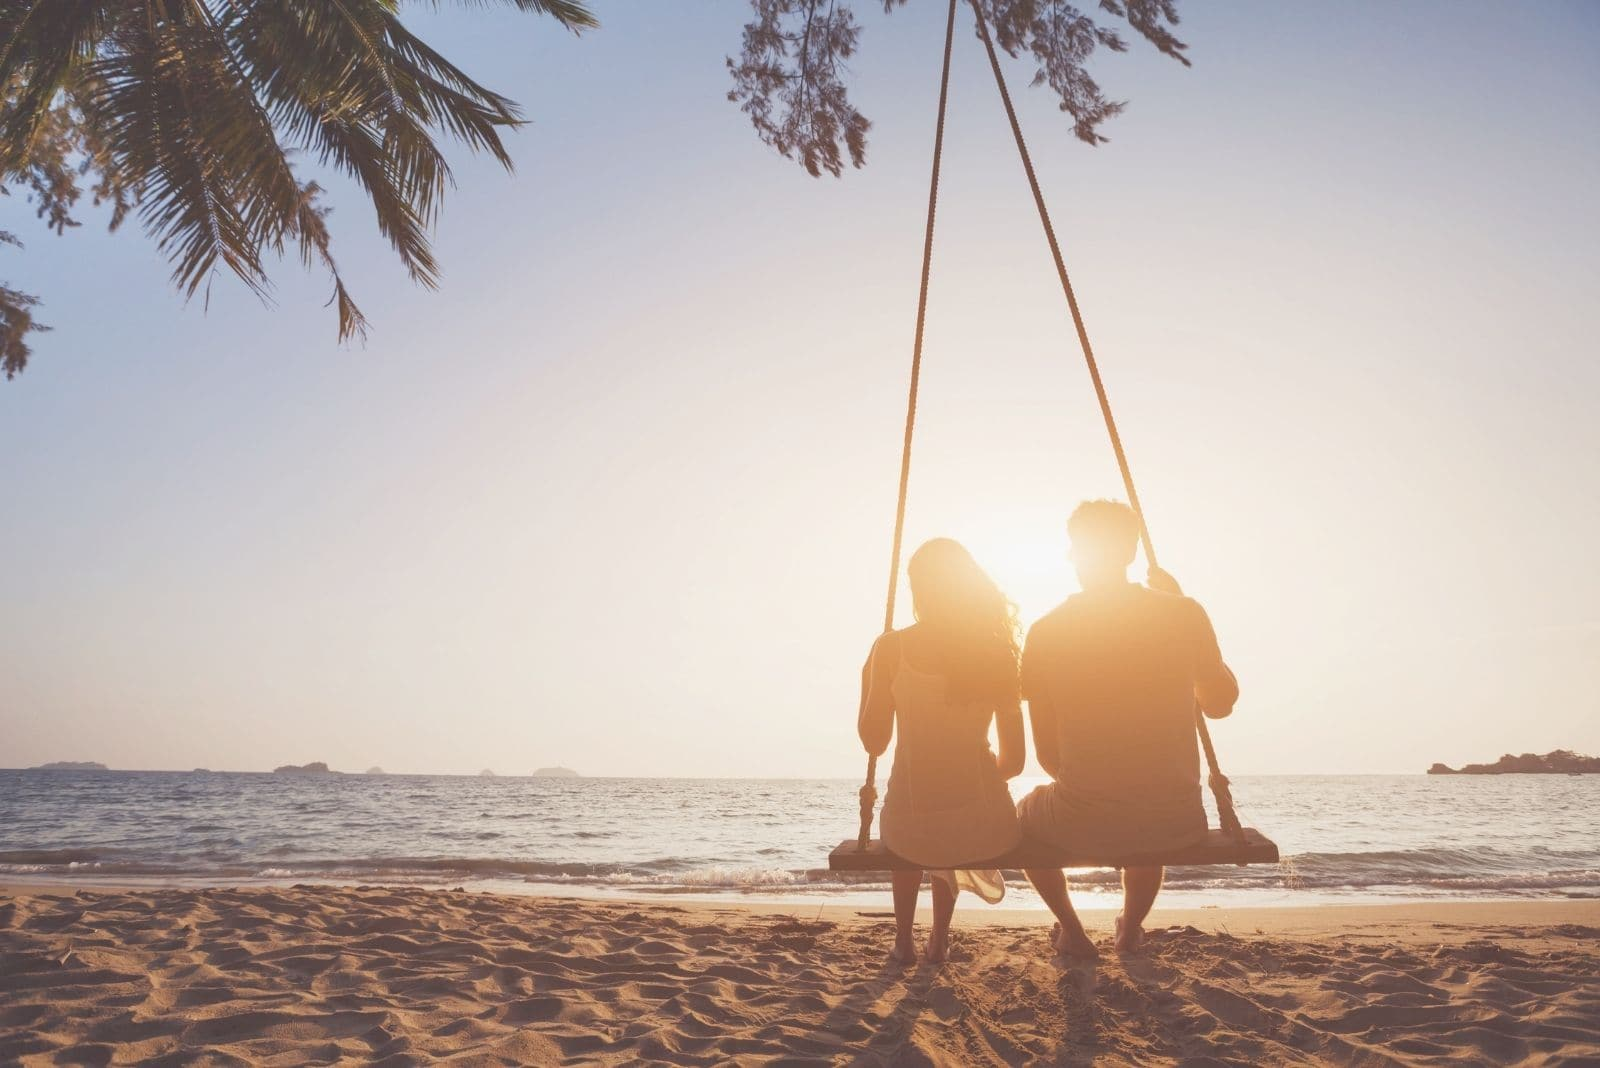 silhouette of a couple in love on a honeymoon sitting on the swing in the beach